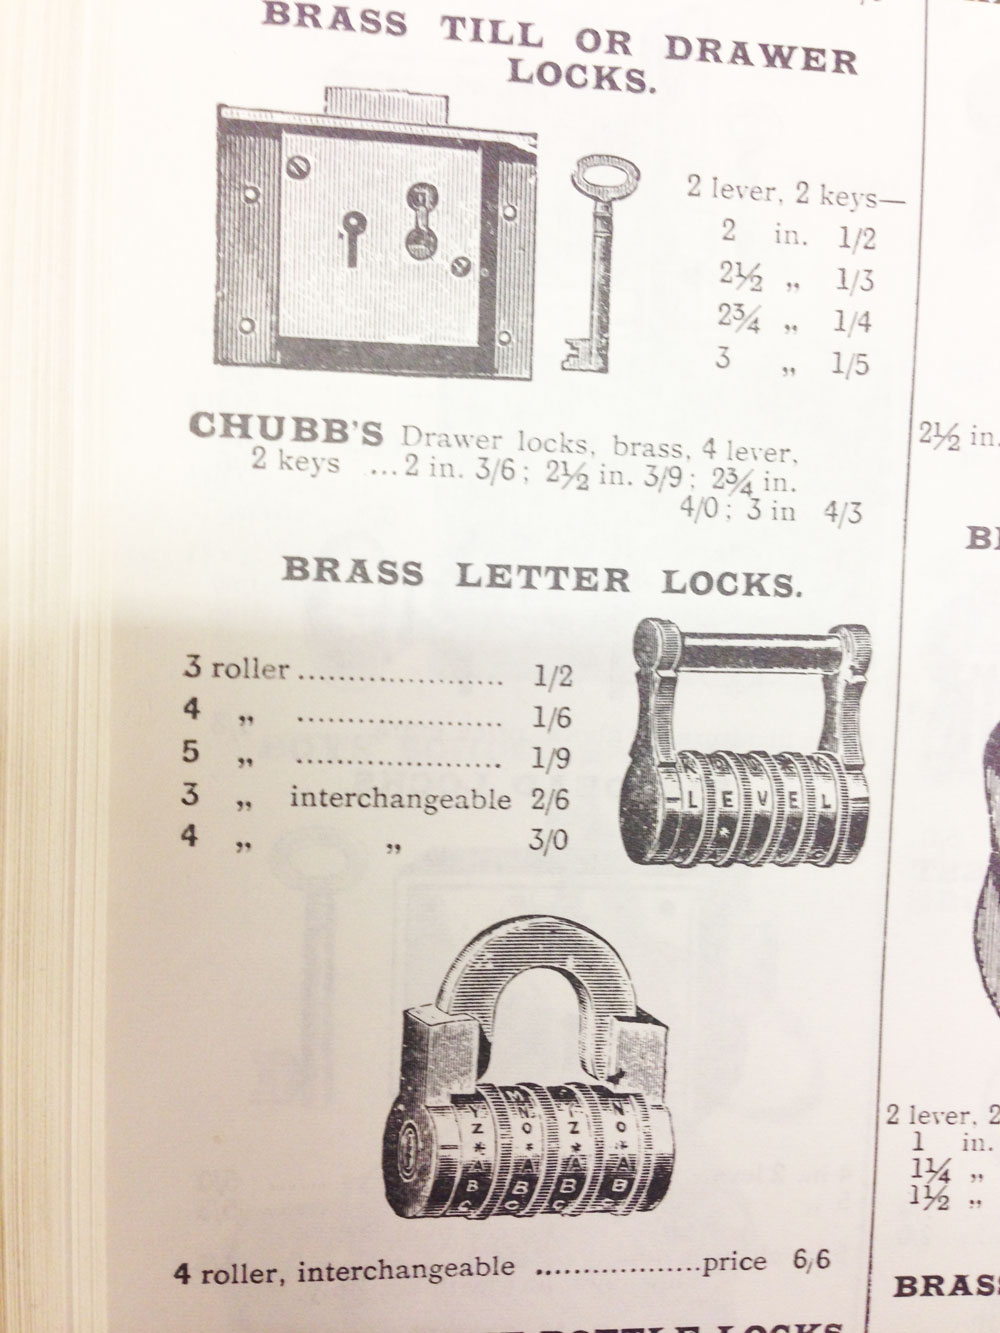 Advertisement for Combination locks from 1907